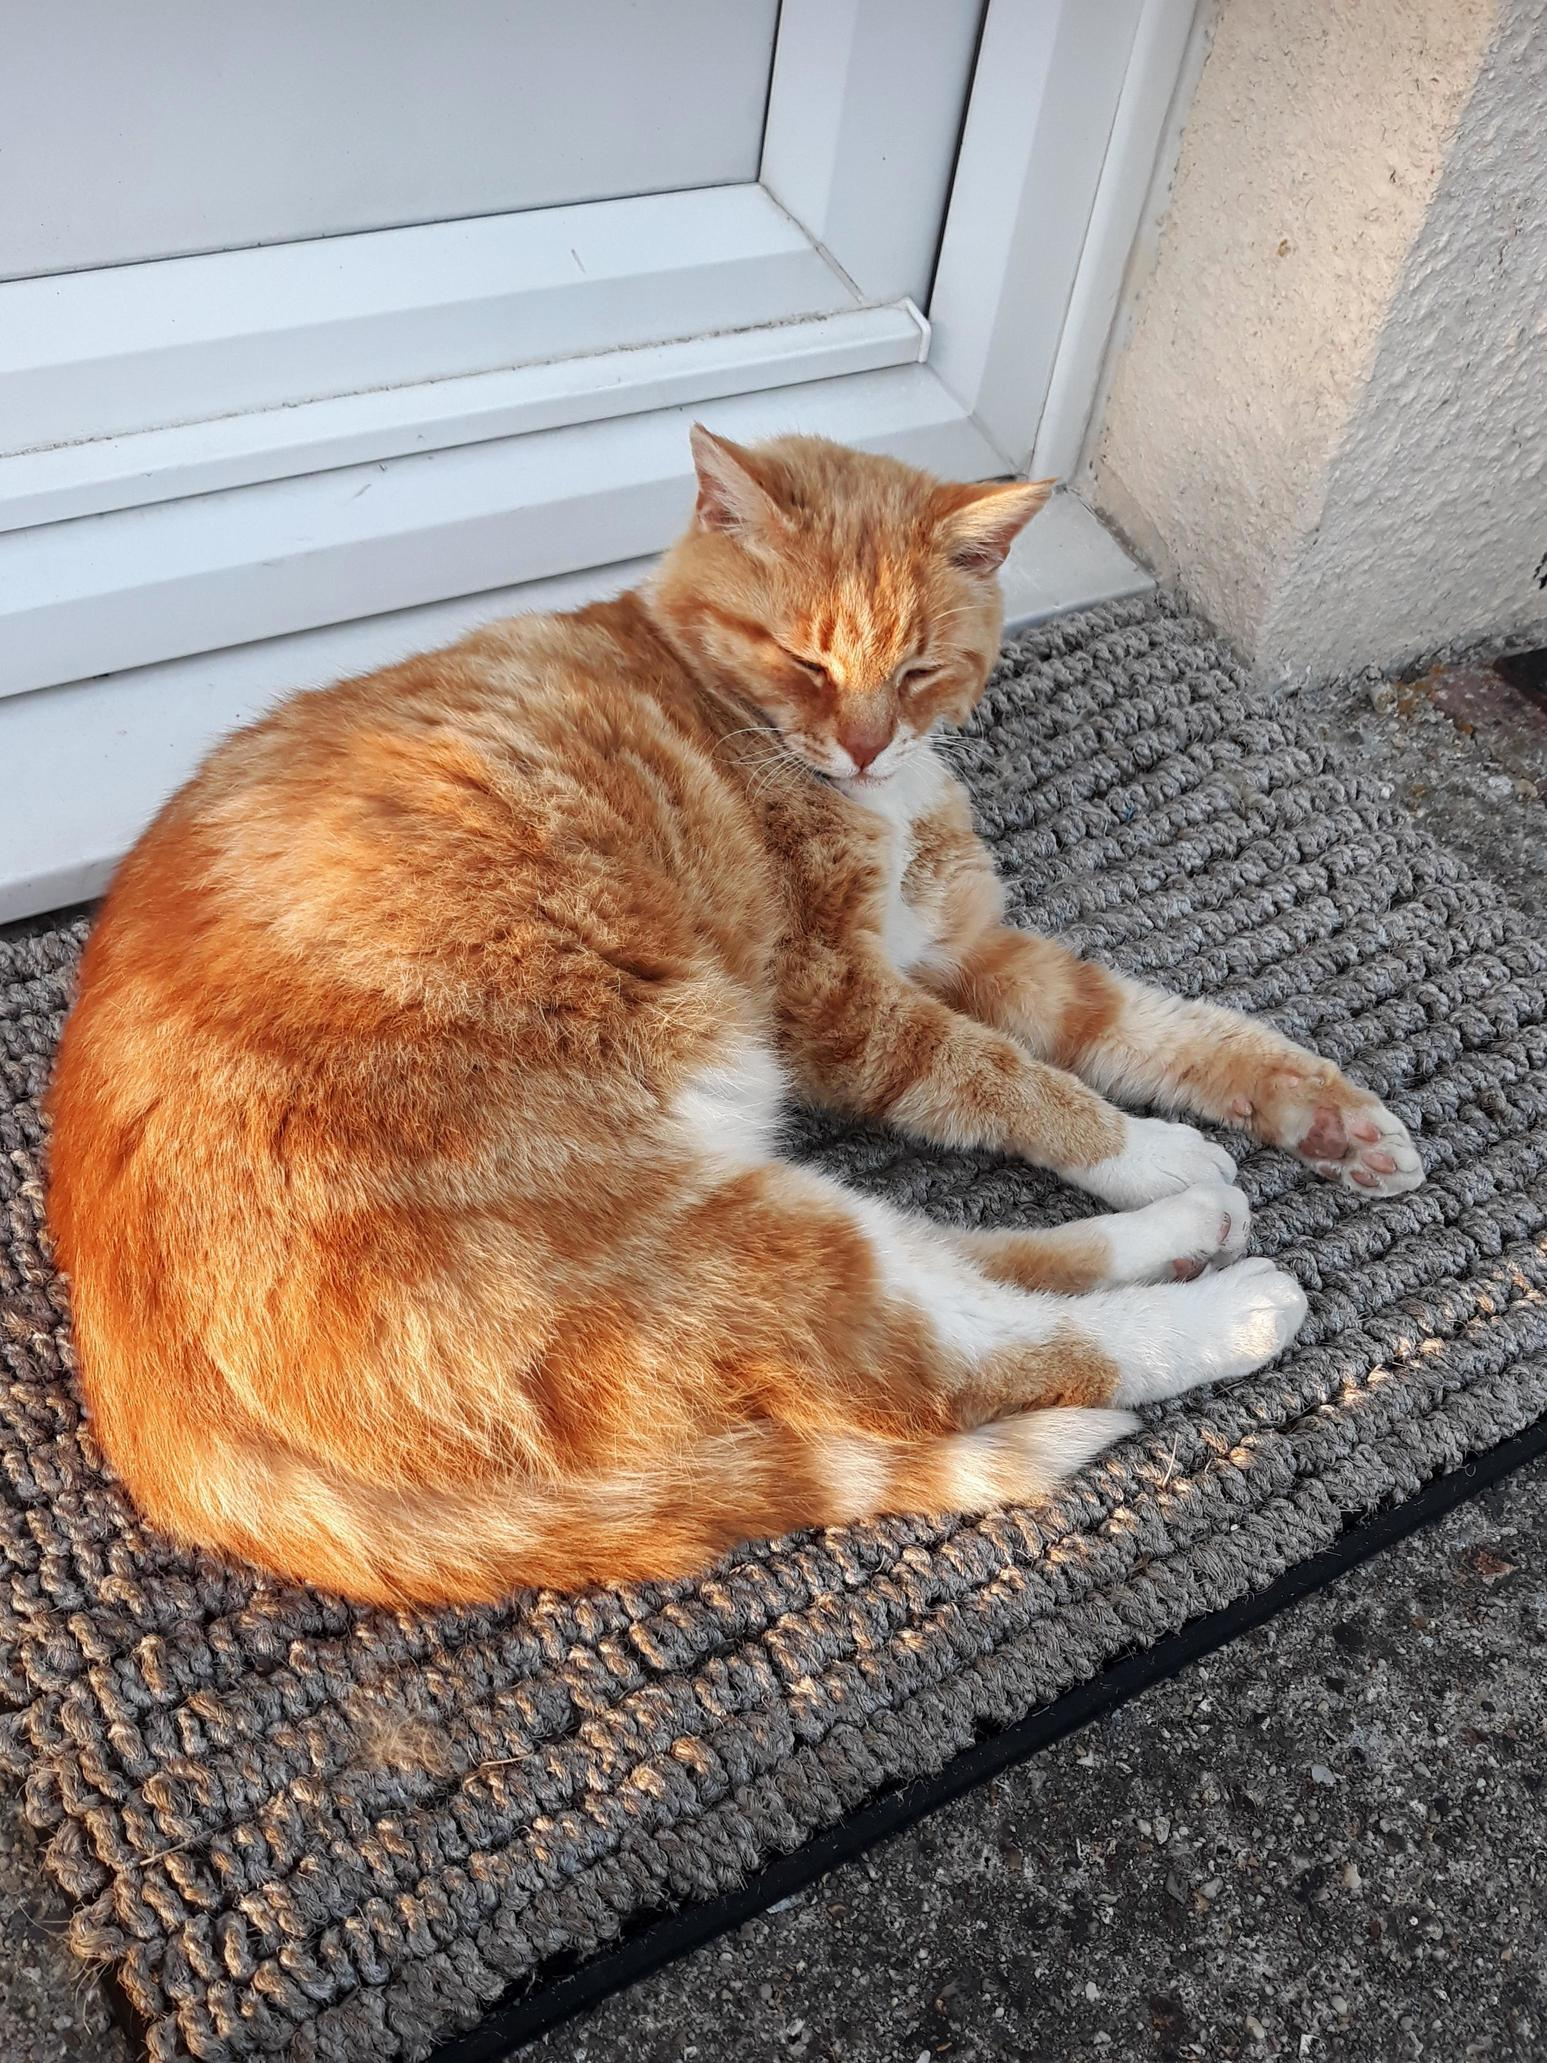 The neighbours cats likes sleeping on my door step. love getting cuddles when i get home